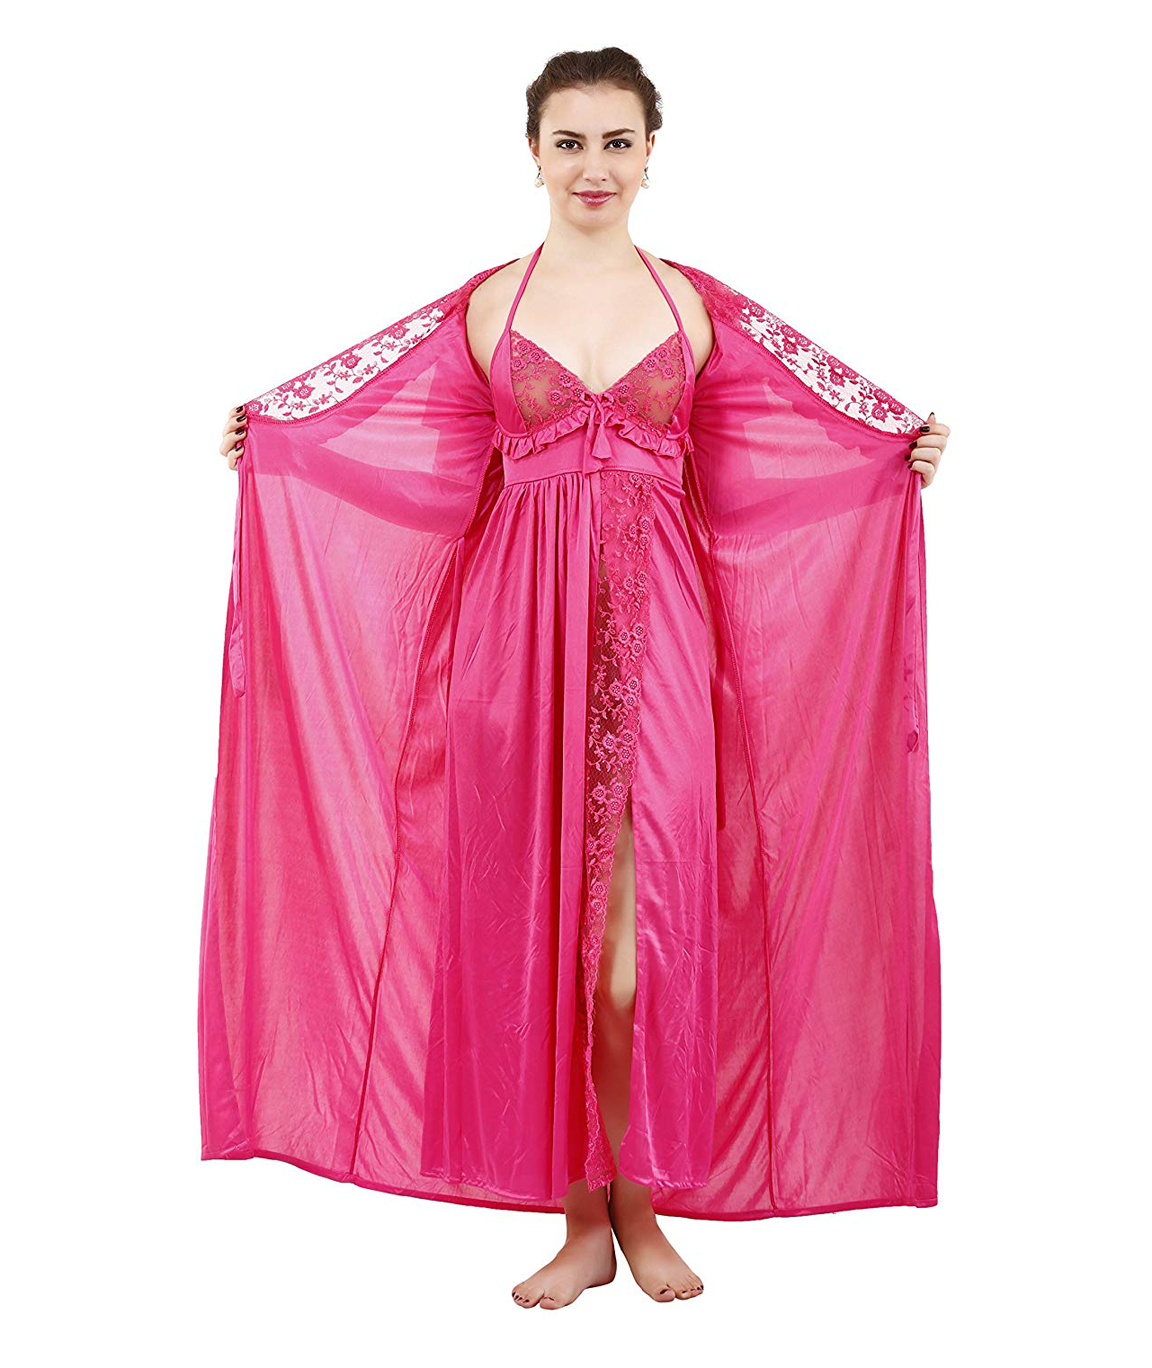 Romaisa Women`s Satin Lace Work Nightdress with Robe (Size - Free) (Pack of 2 Pcs)COLOUR : LIGHT CORAL 1